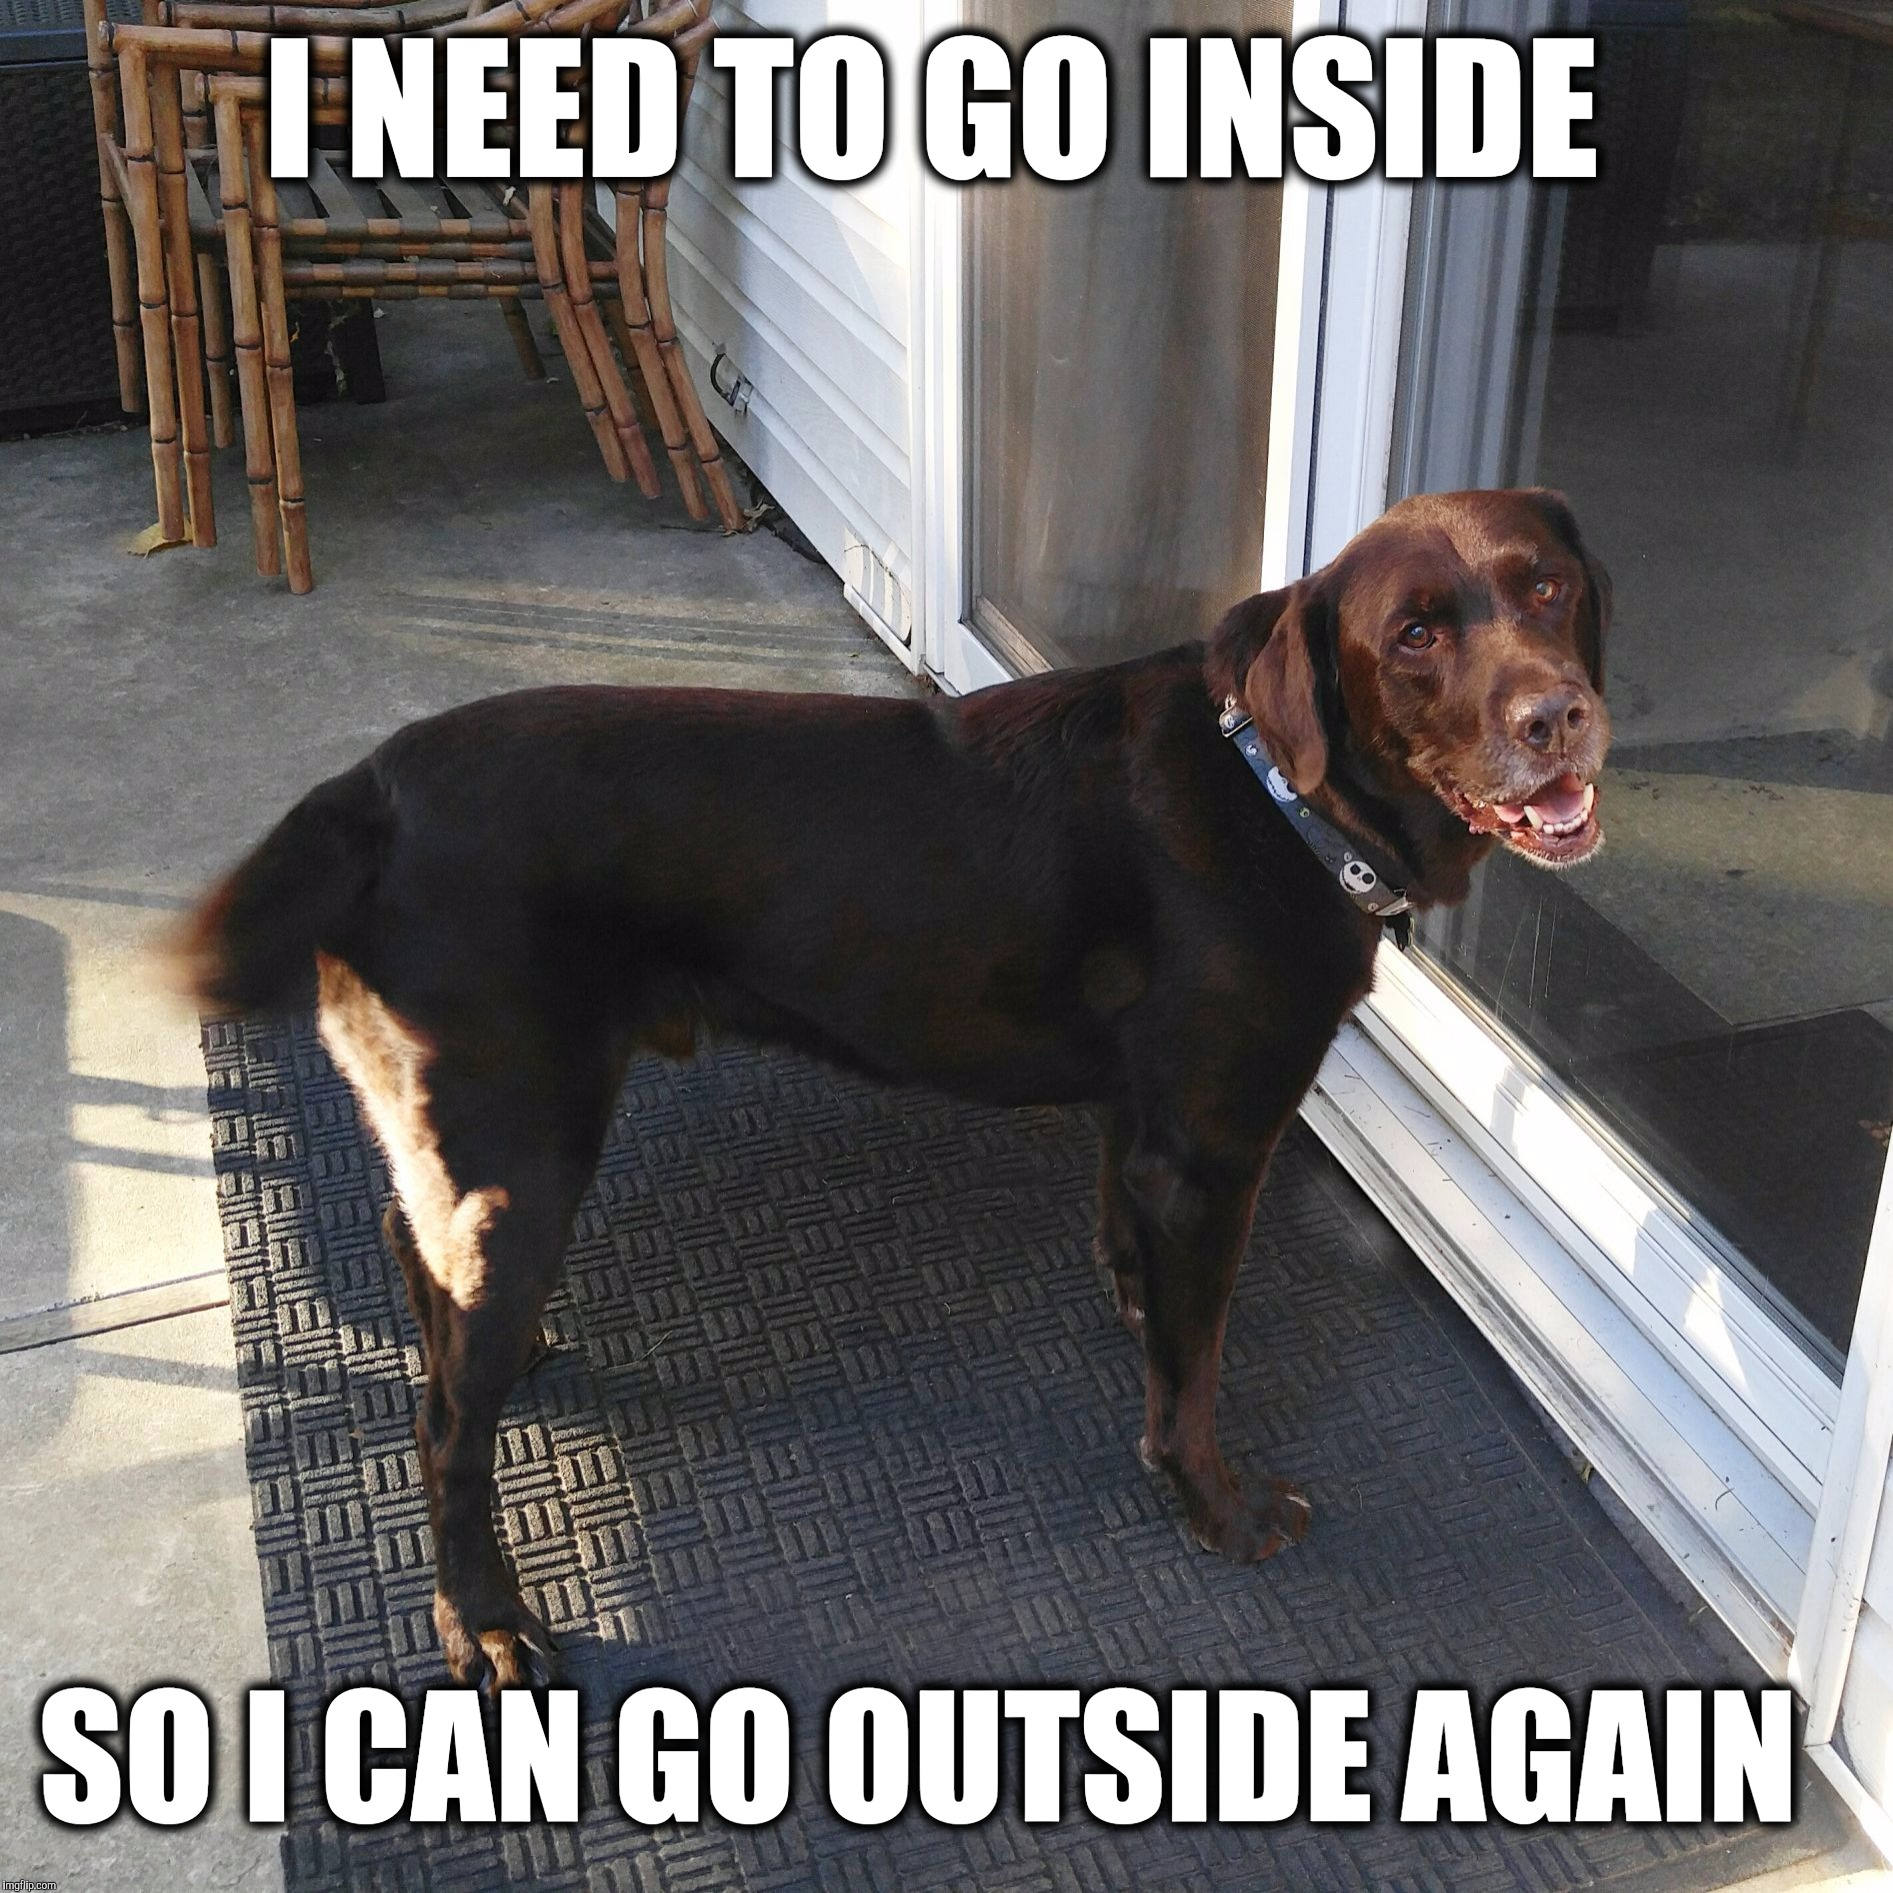 I need to go inside, so I can go outside again  | I NEED TO GO INSIDE SO I CAN GO OUTSIDE AGAIN | image tagged in chuckie the chocolate lab,funny dog memes,labrador,go inside,funny,funny memes | made w/ Imgflip meme maker